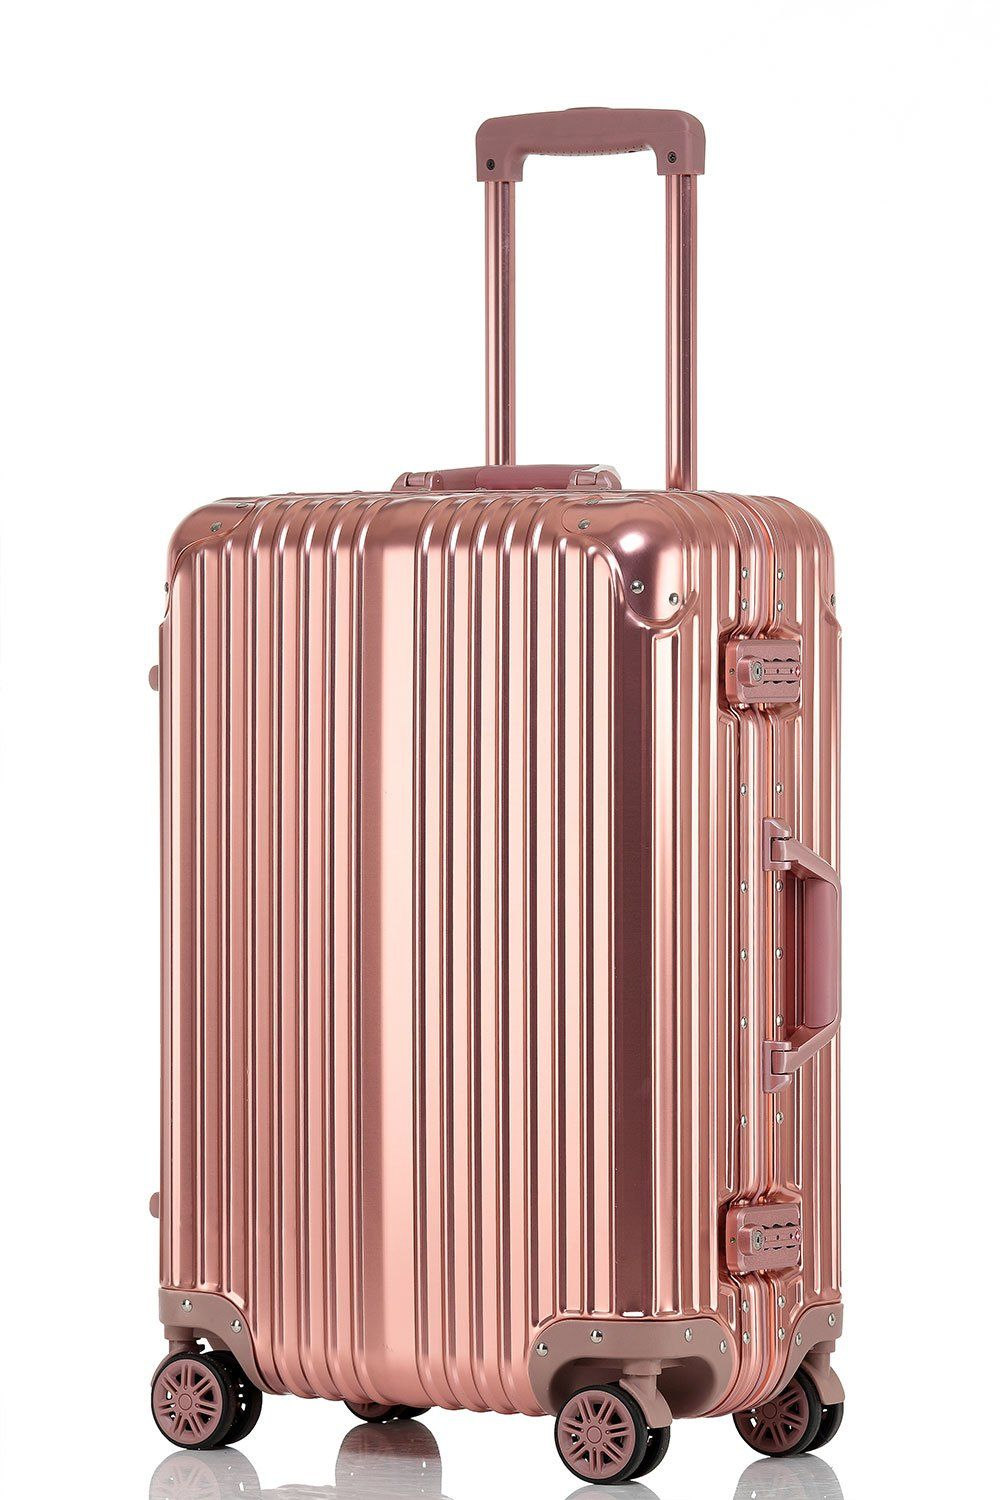 fa552a993bef sindermore 100% All Aluminum Magnesium Alloy Frame and Hardshell 20 inch  Carry-On Suitcase